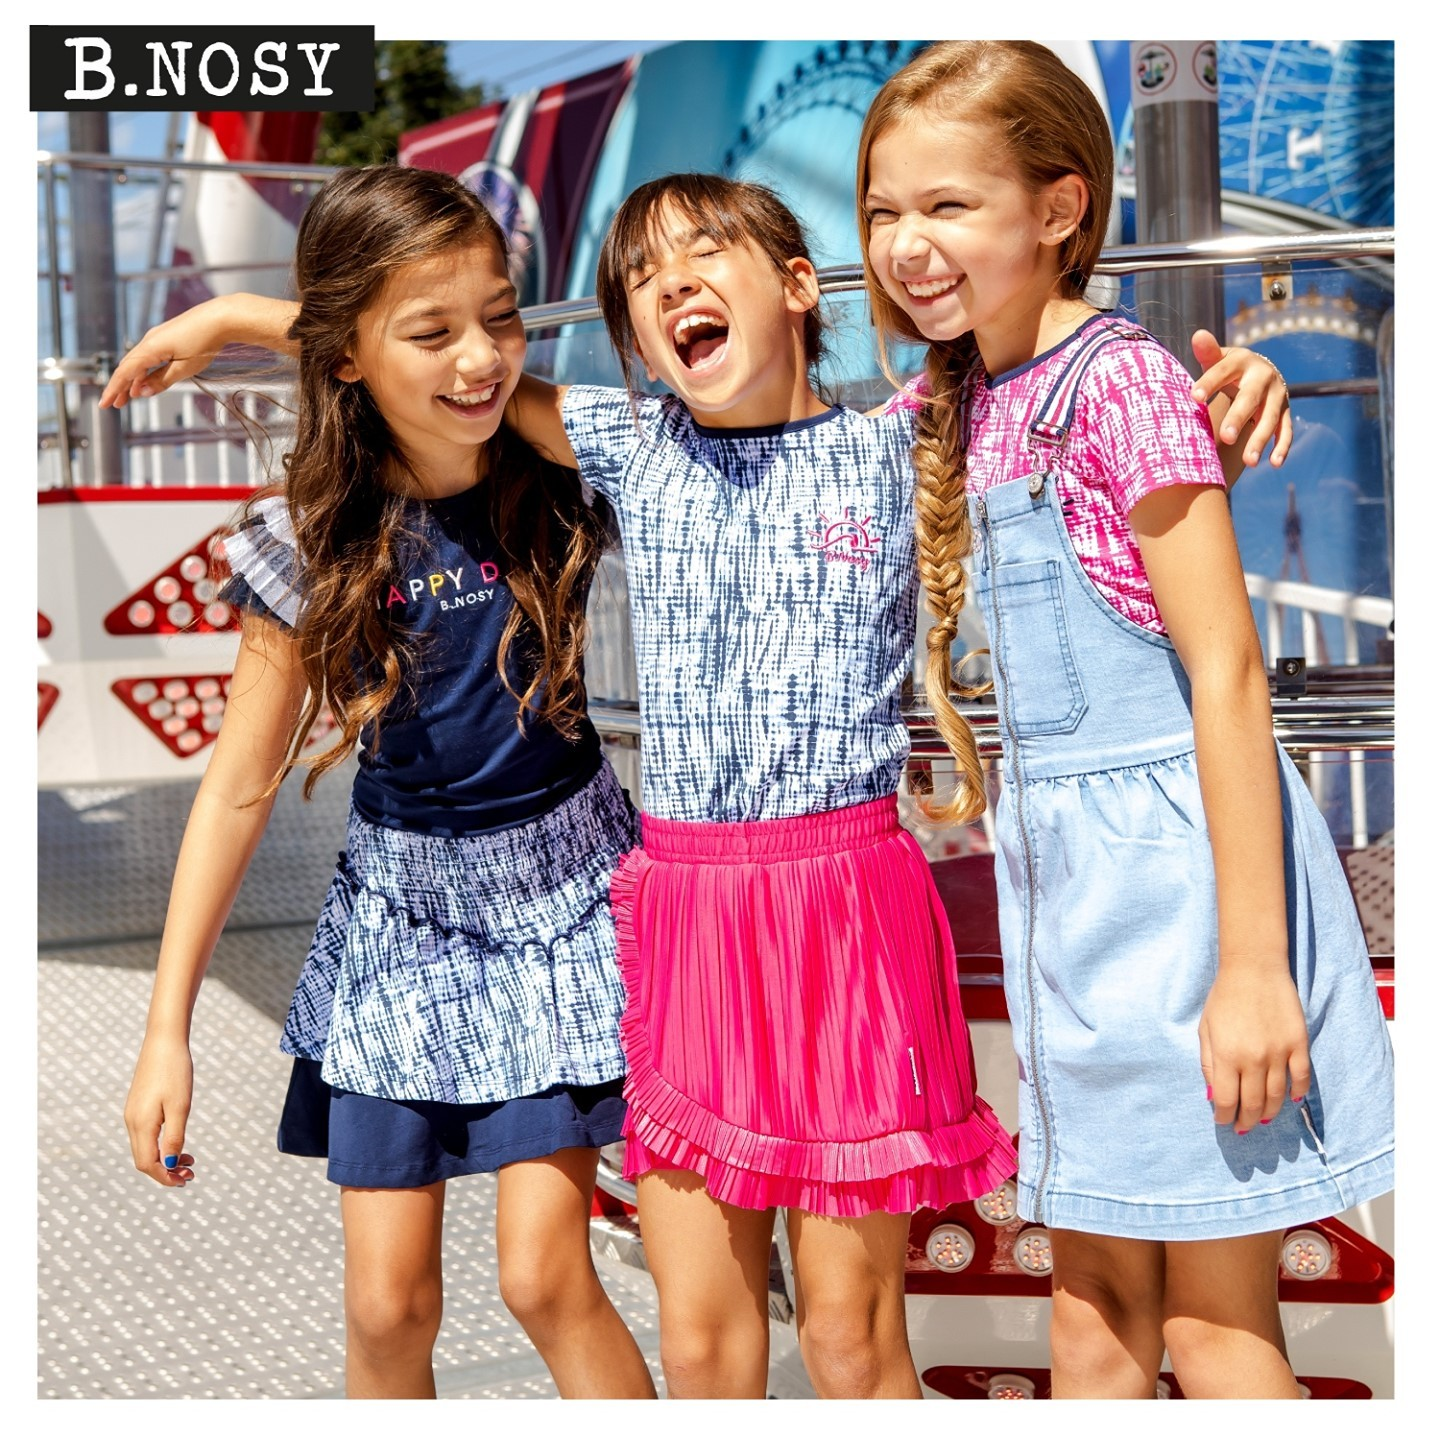 BEST FRIENDS FOREVER! ⁠ What are you plans for today? Let us know!⁠ #happysunday #modelfriends #kidsfashion #bnosygirls #happylaugh #tiedyecollection #denimdress #awesomeskirts #girlswear #sundayinspiration #letsgotothefair #letshavesomefun #bfun